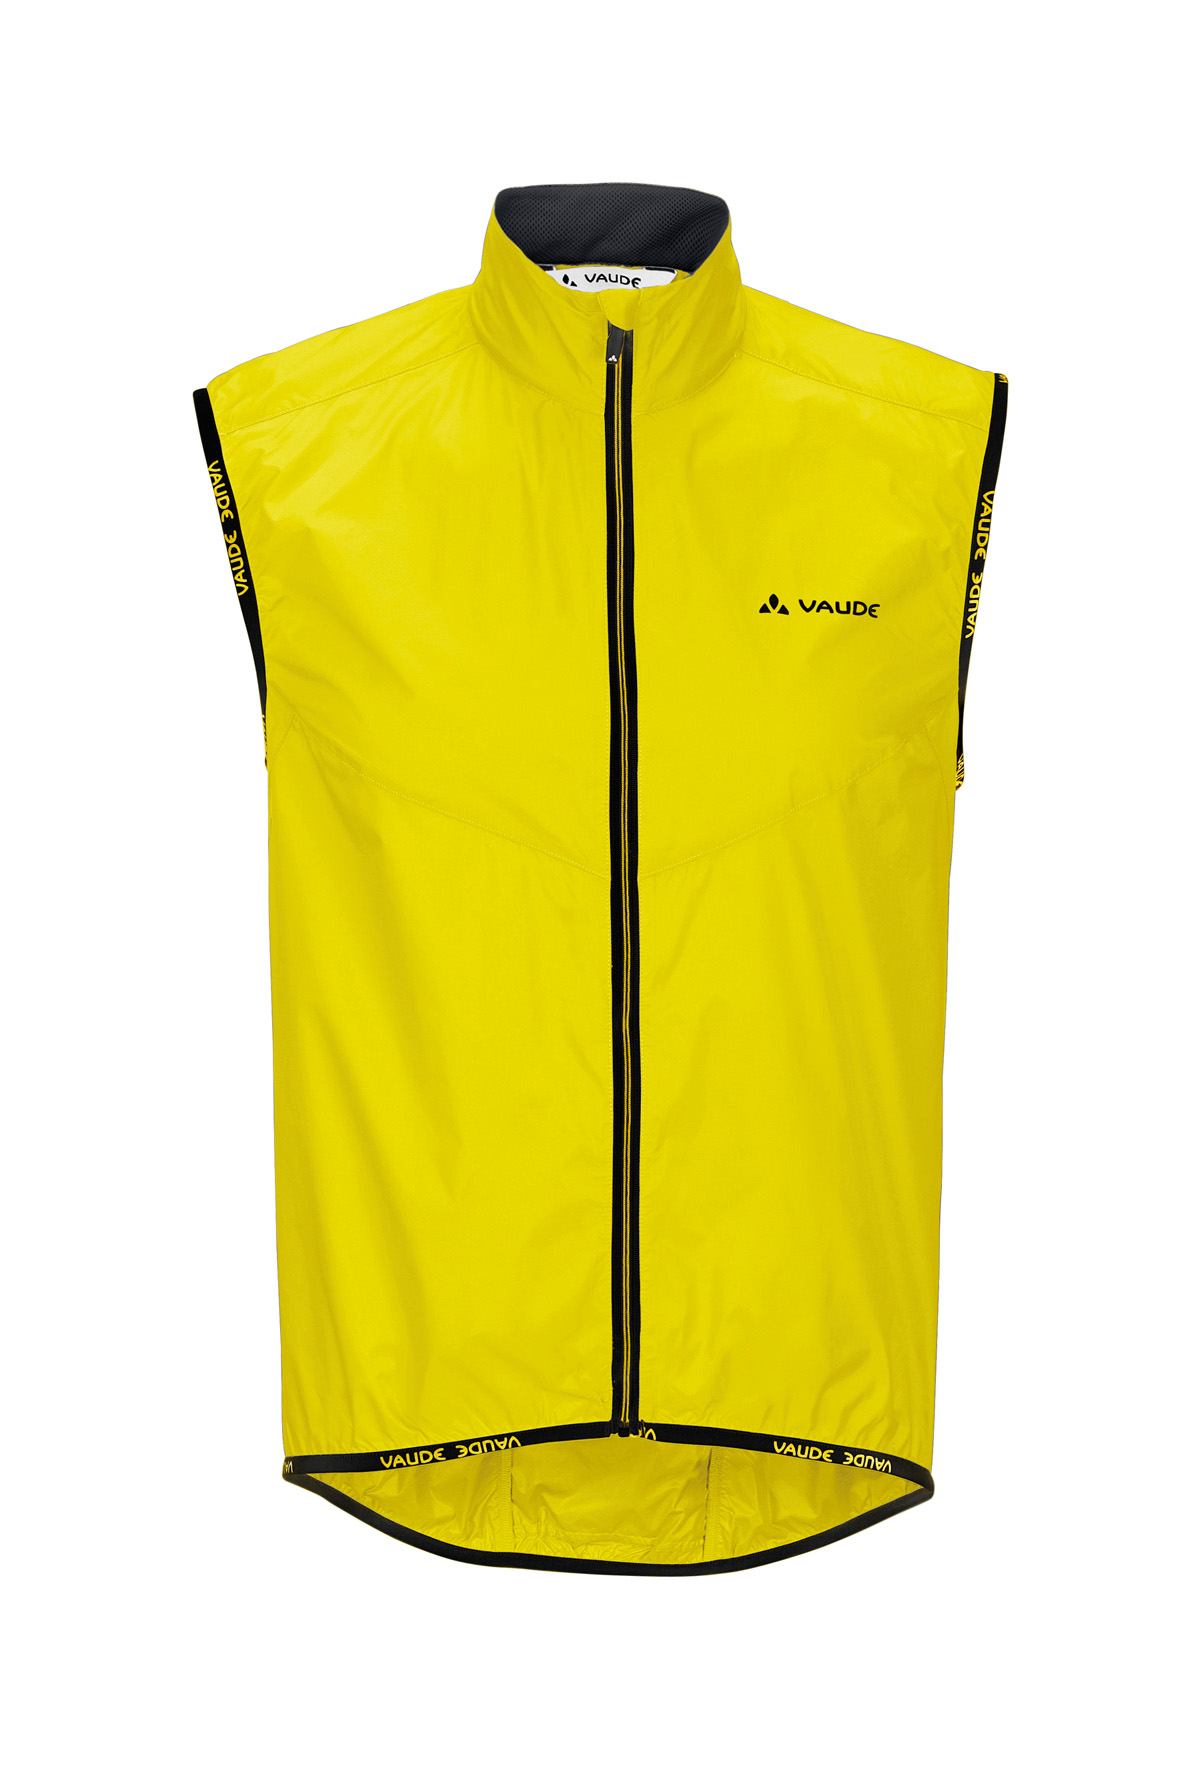 VAUDE Men´s Air Vest II canary Größe S - schneider-sports